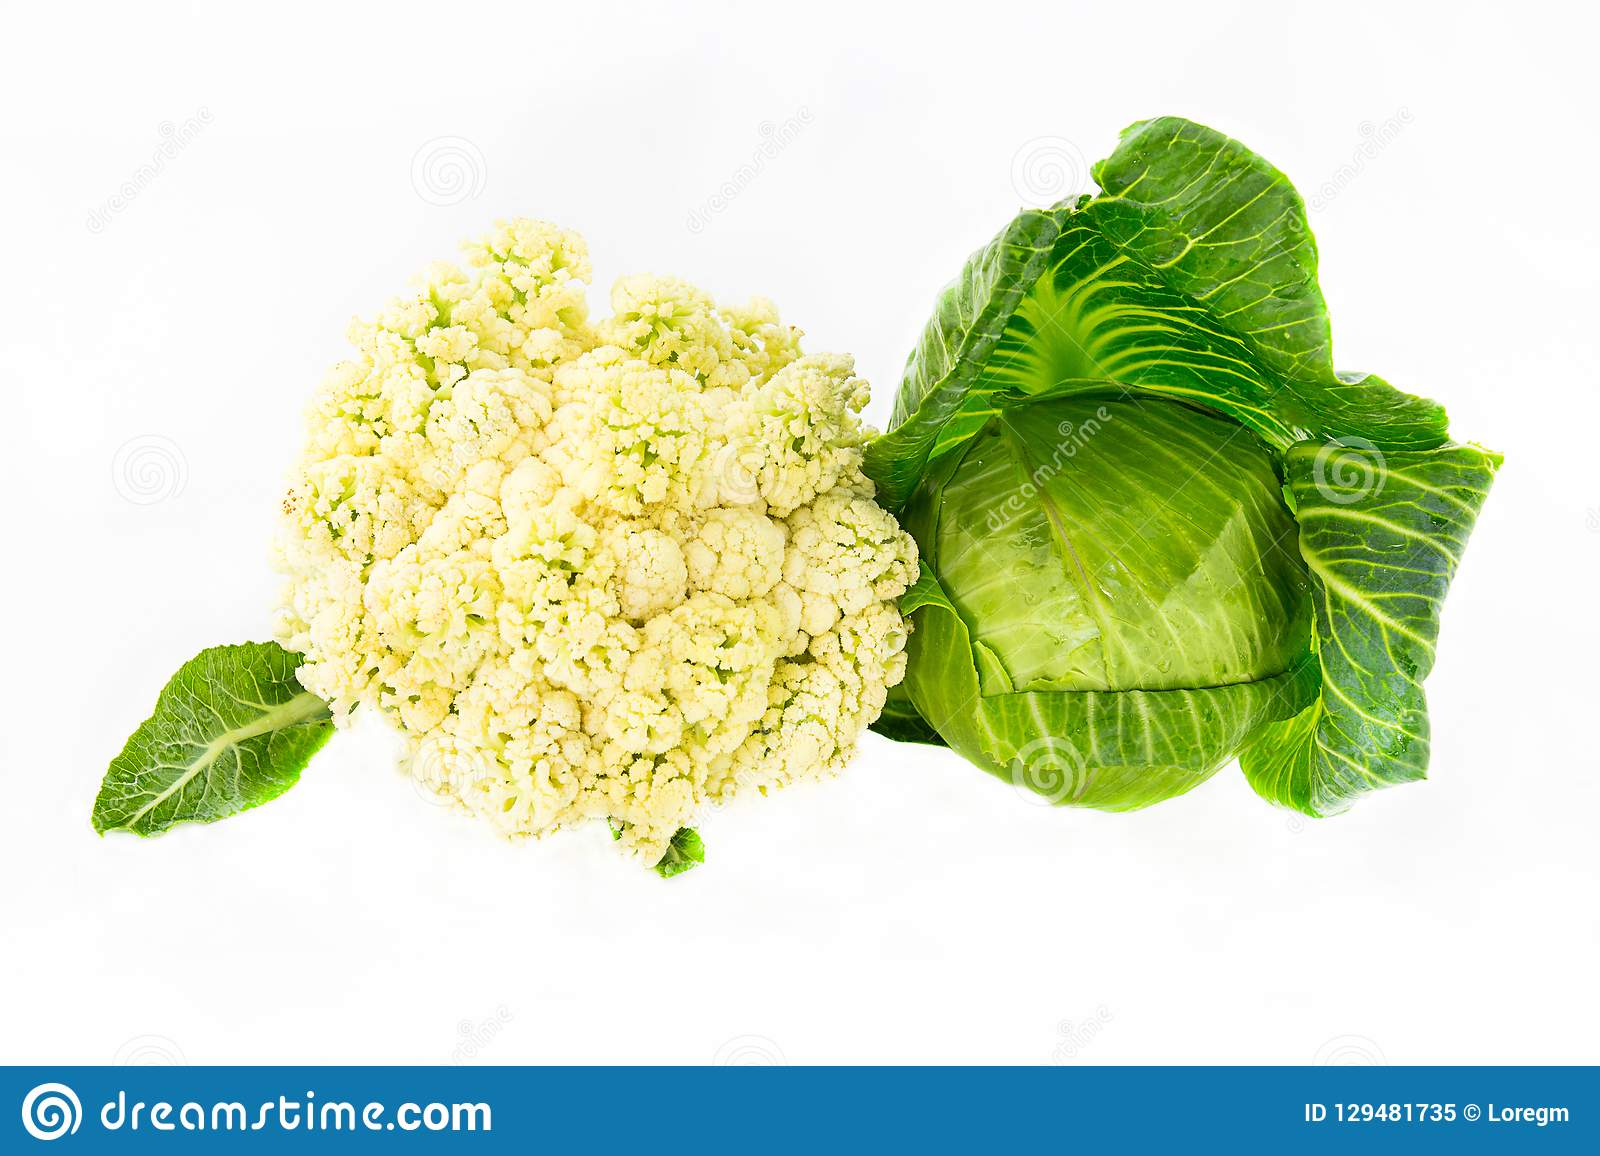 Couple of whole cabbage colored creamy surface with a young dark green leaves head out on a white isolated background